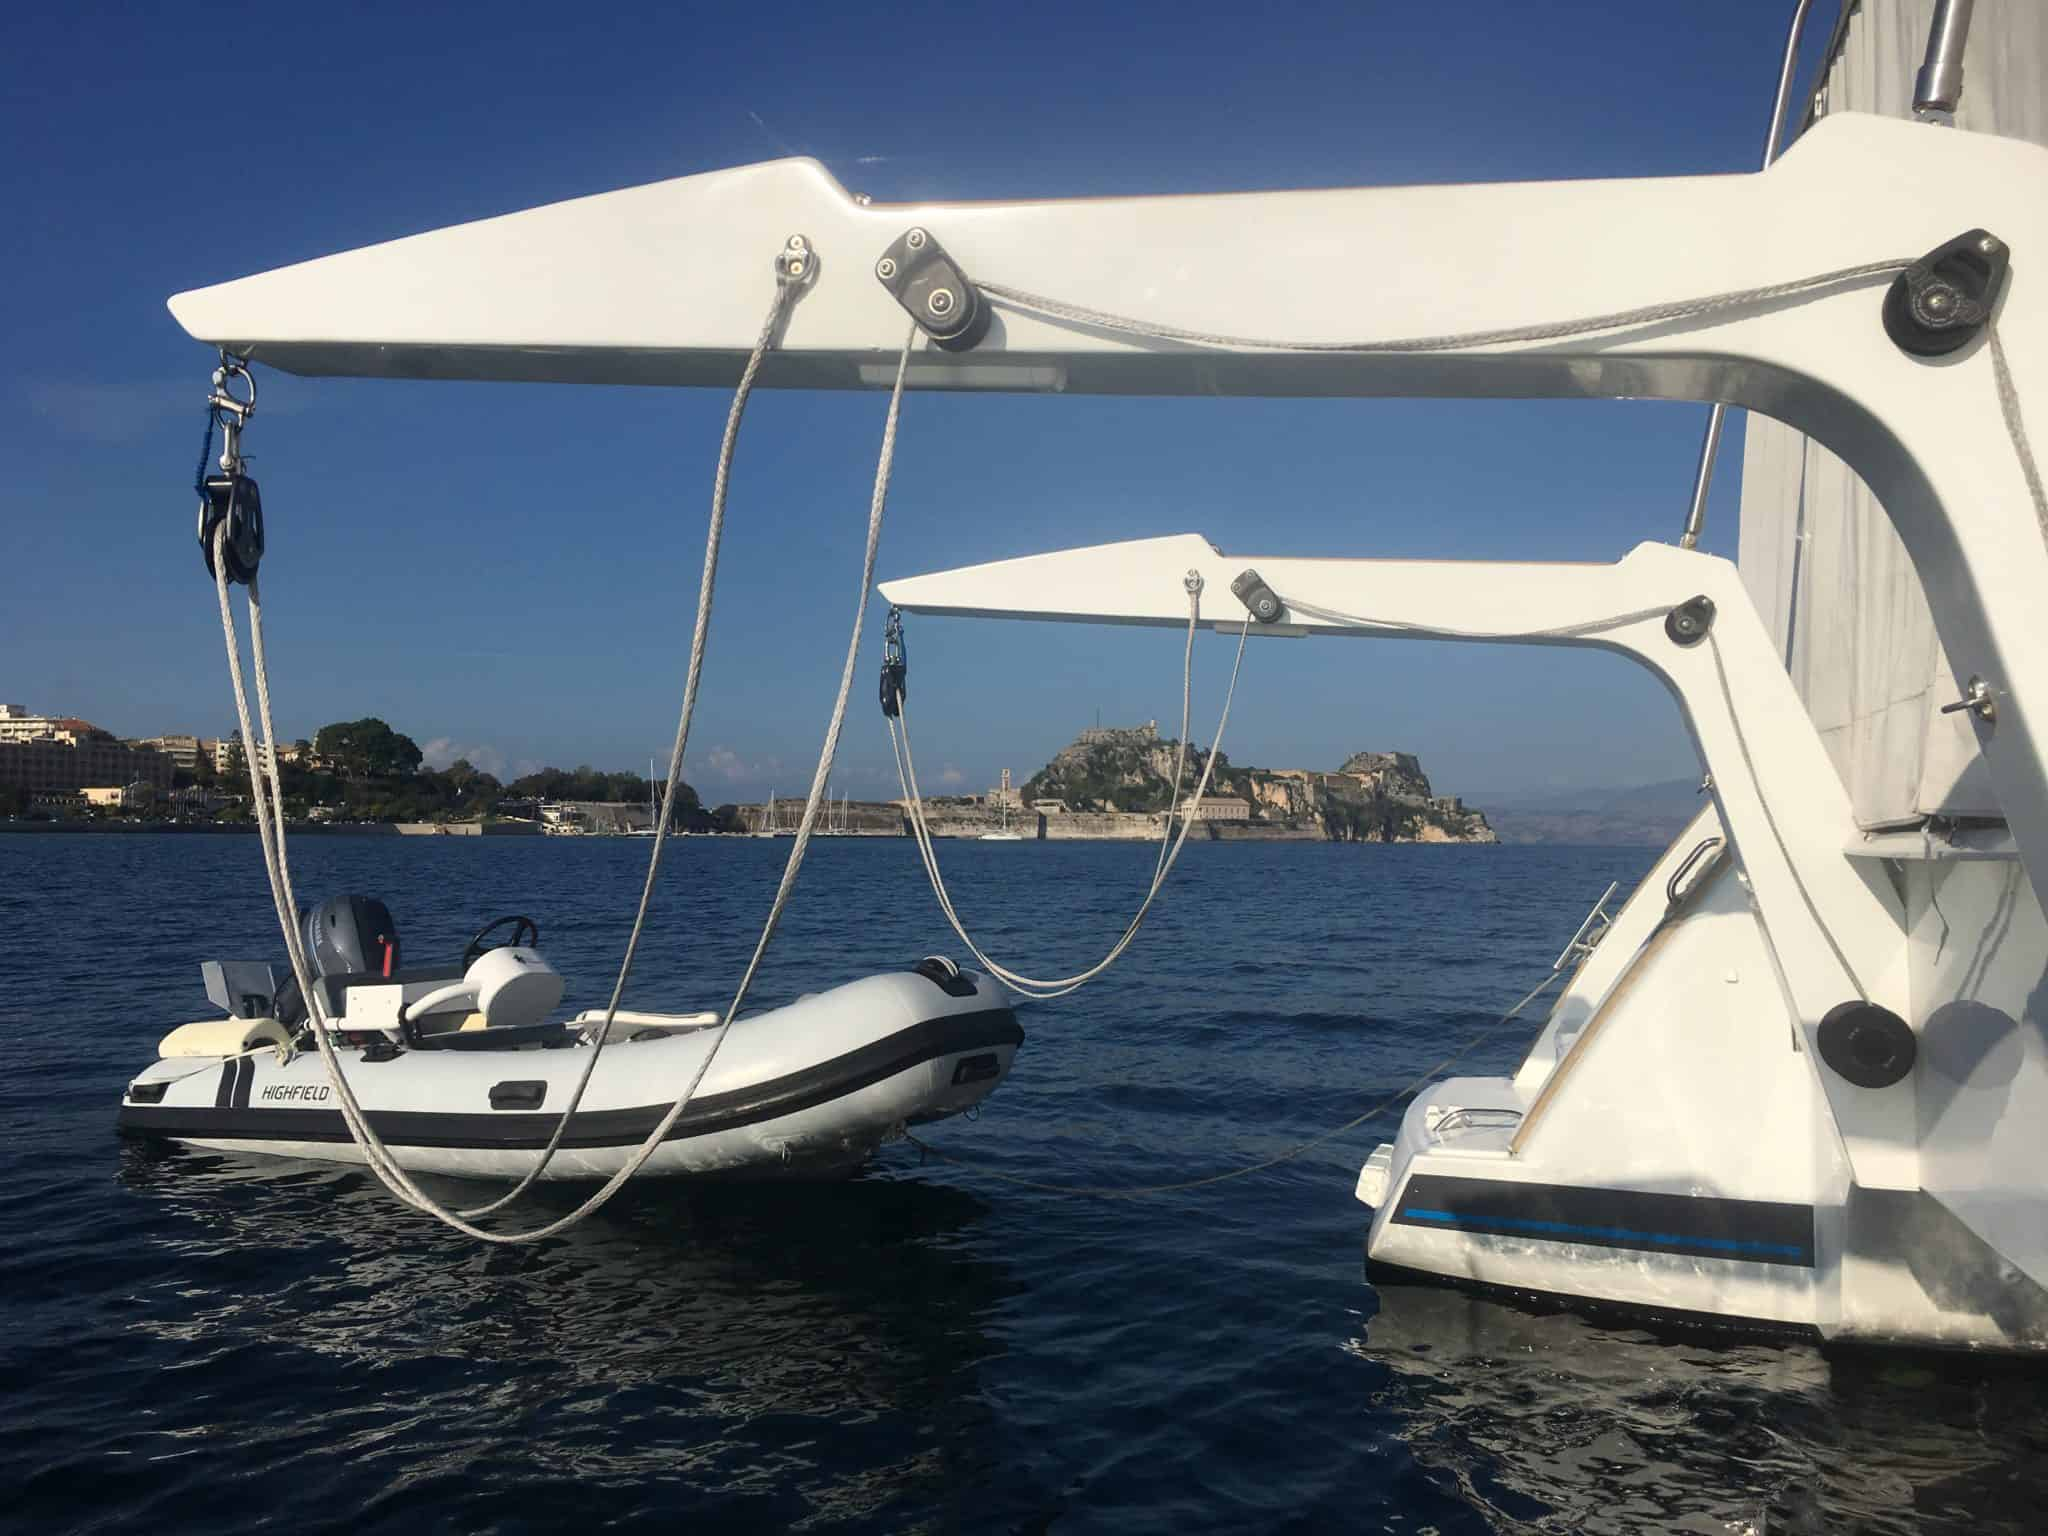 Dinghy in the water next to davits